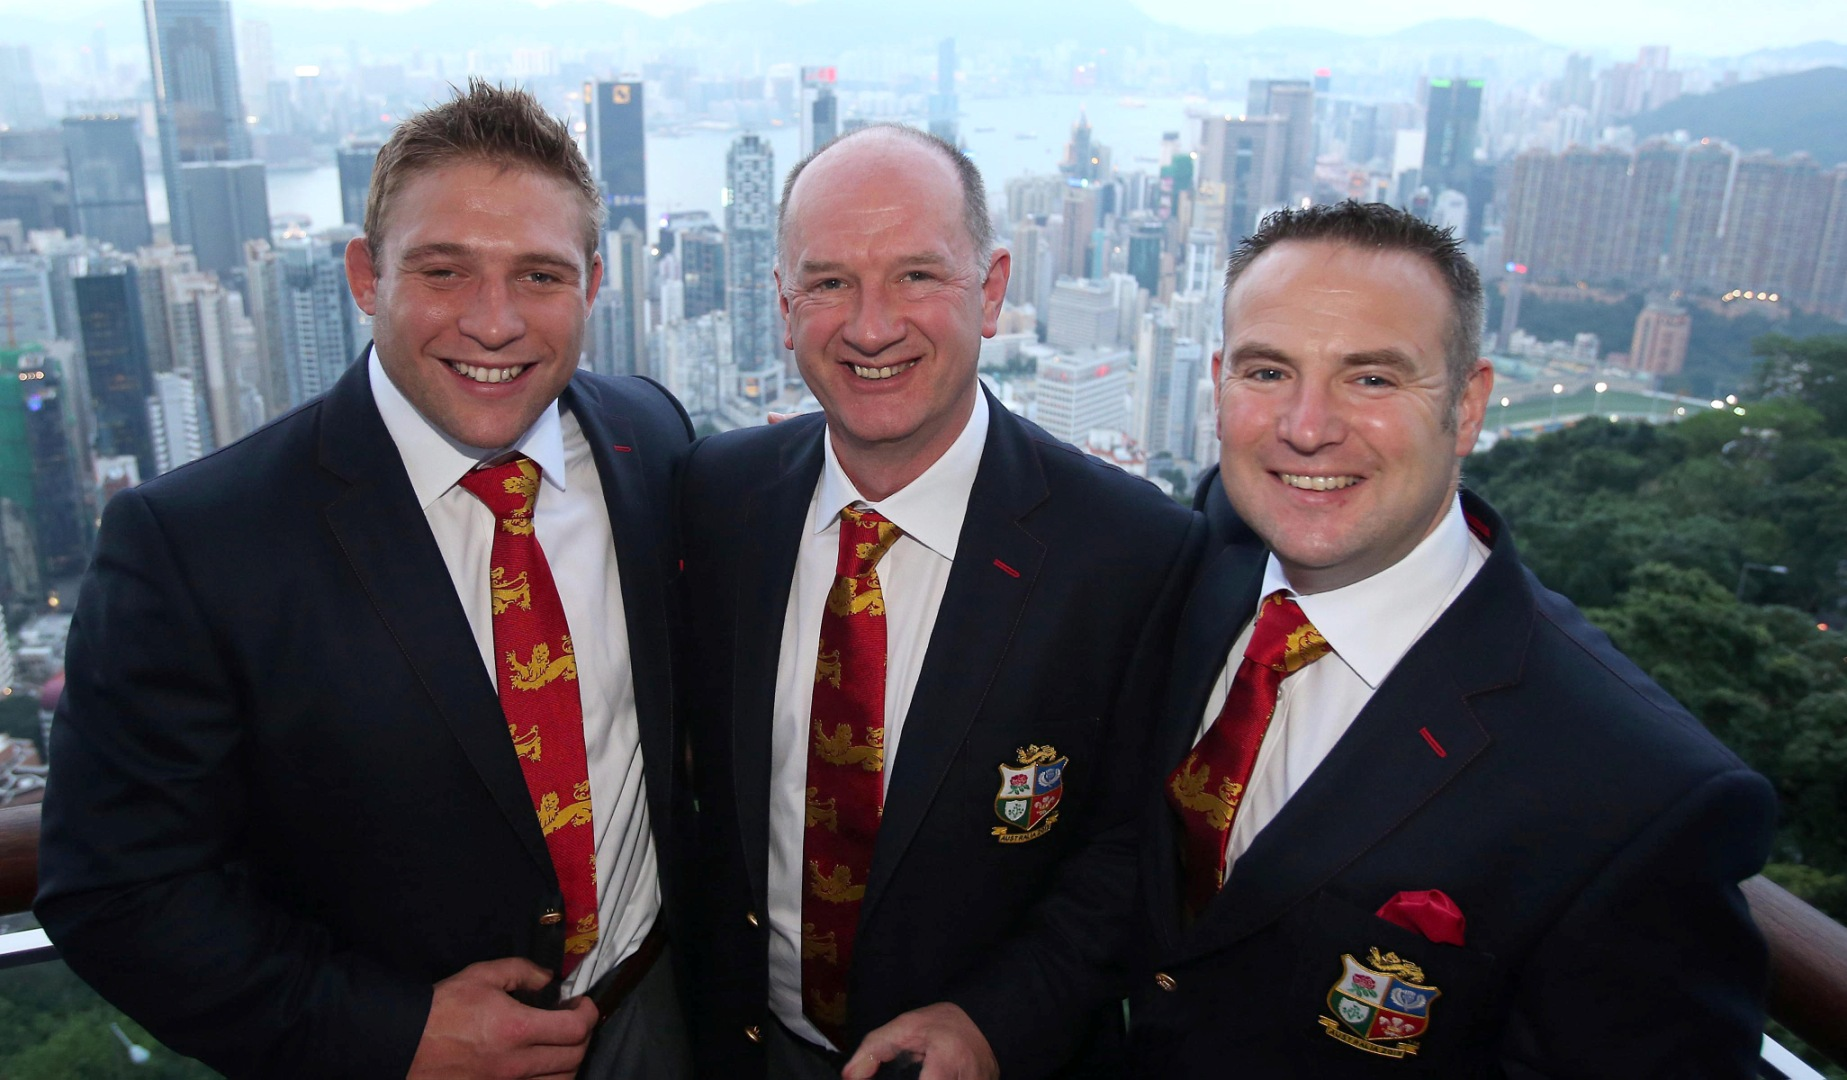 Lions appoint Head of Communications for 2017 Tour